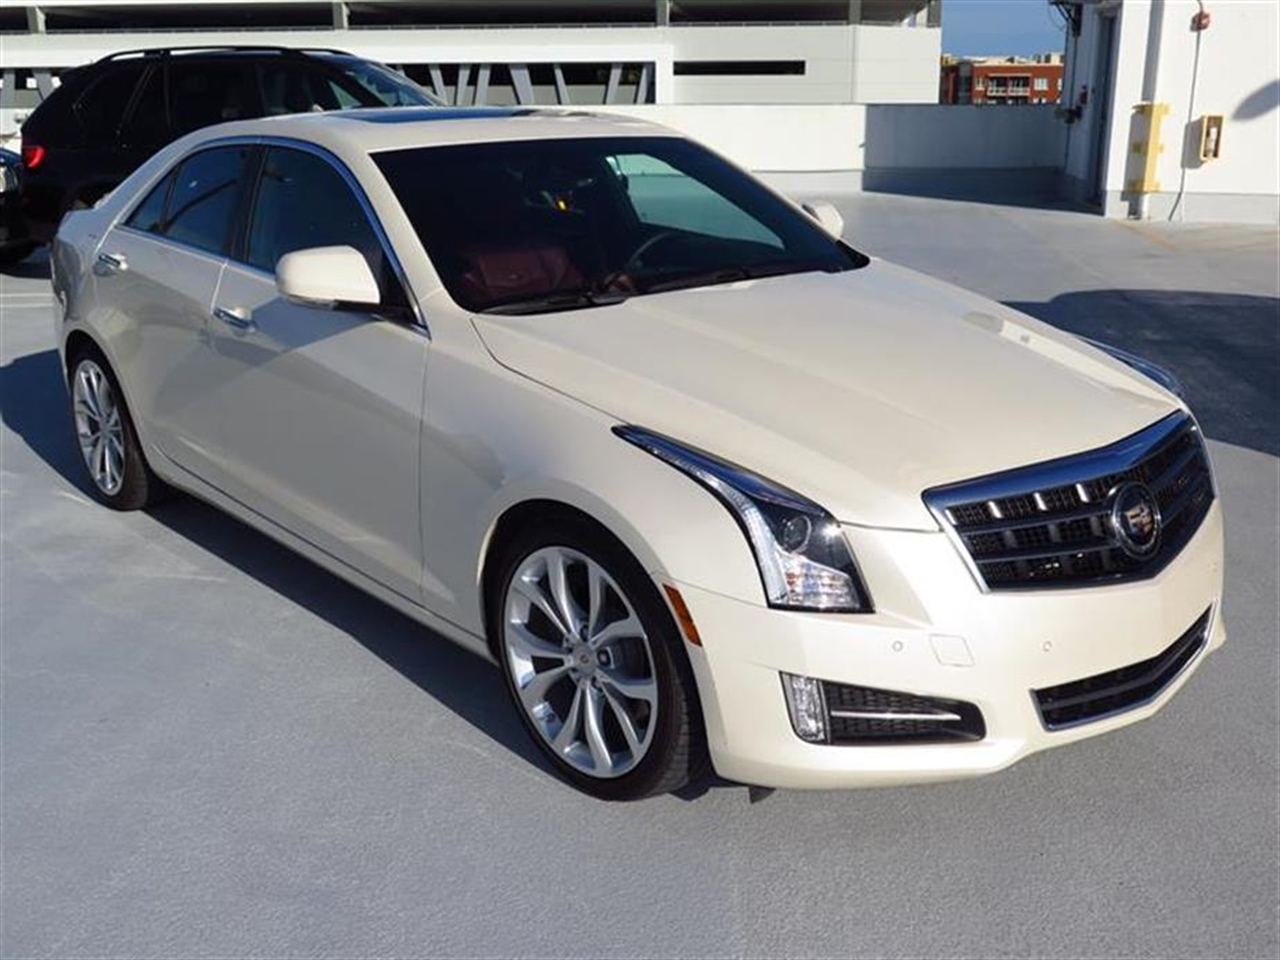 2013 CADILLAC ATS 4dr Sdn 20L Premium RWD 10037 miles Adaptive Remote Start Not available with